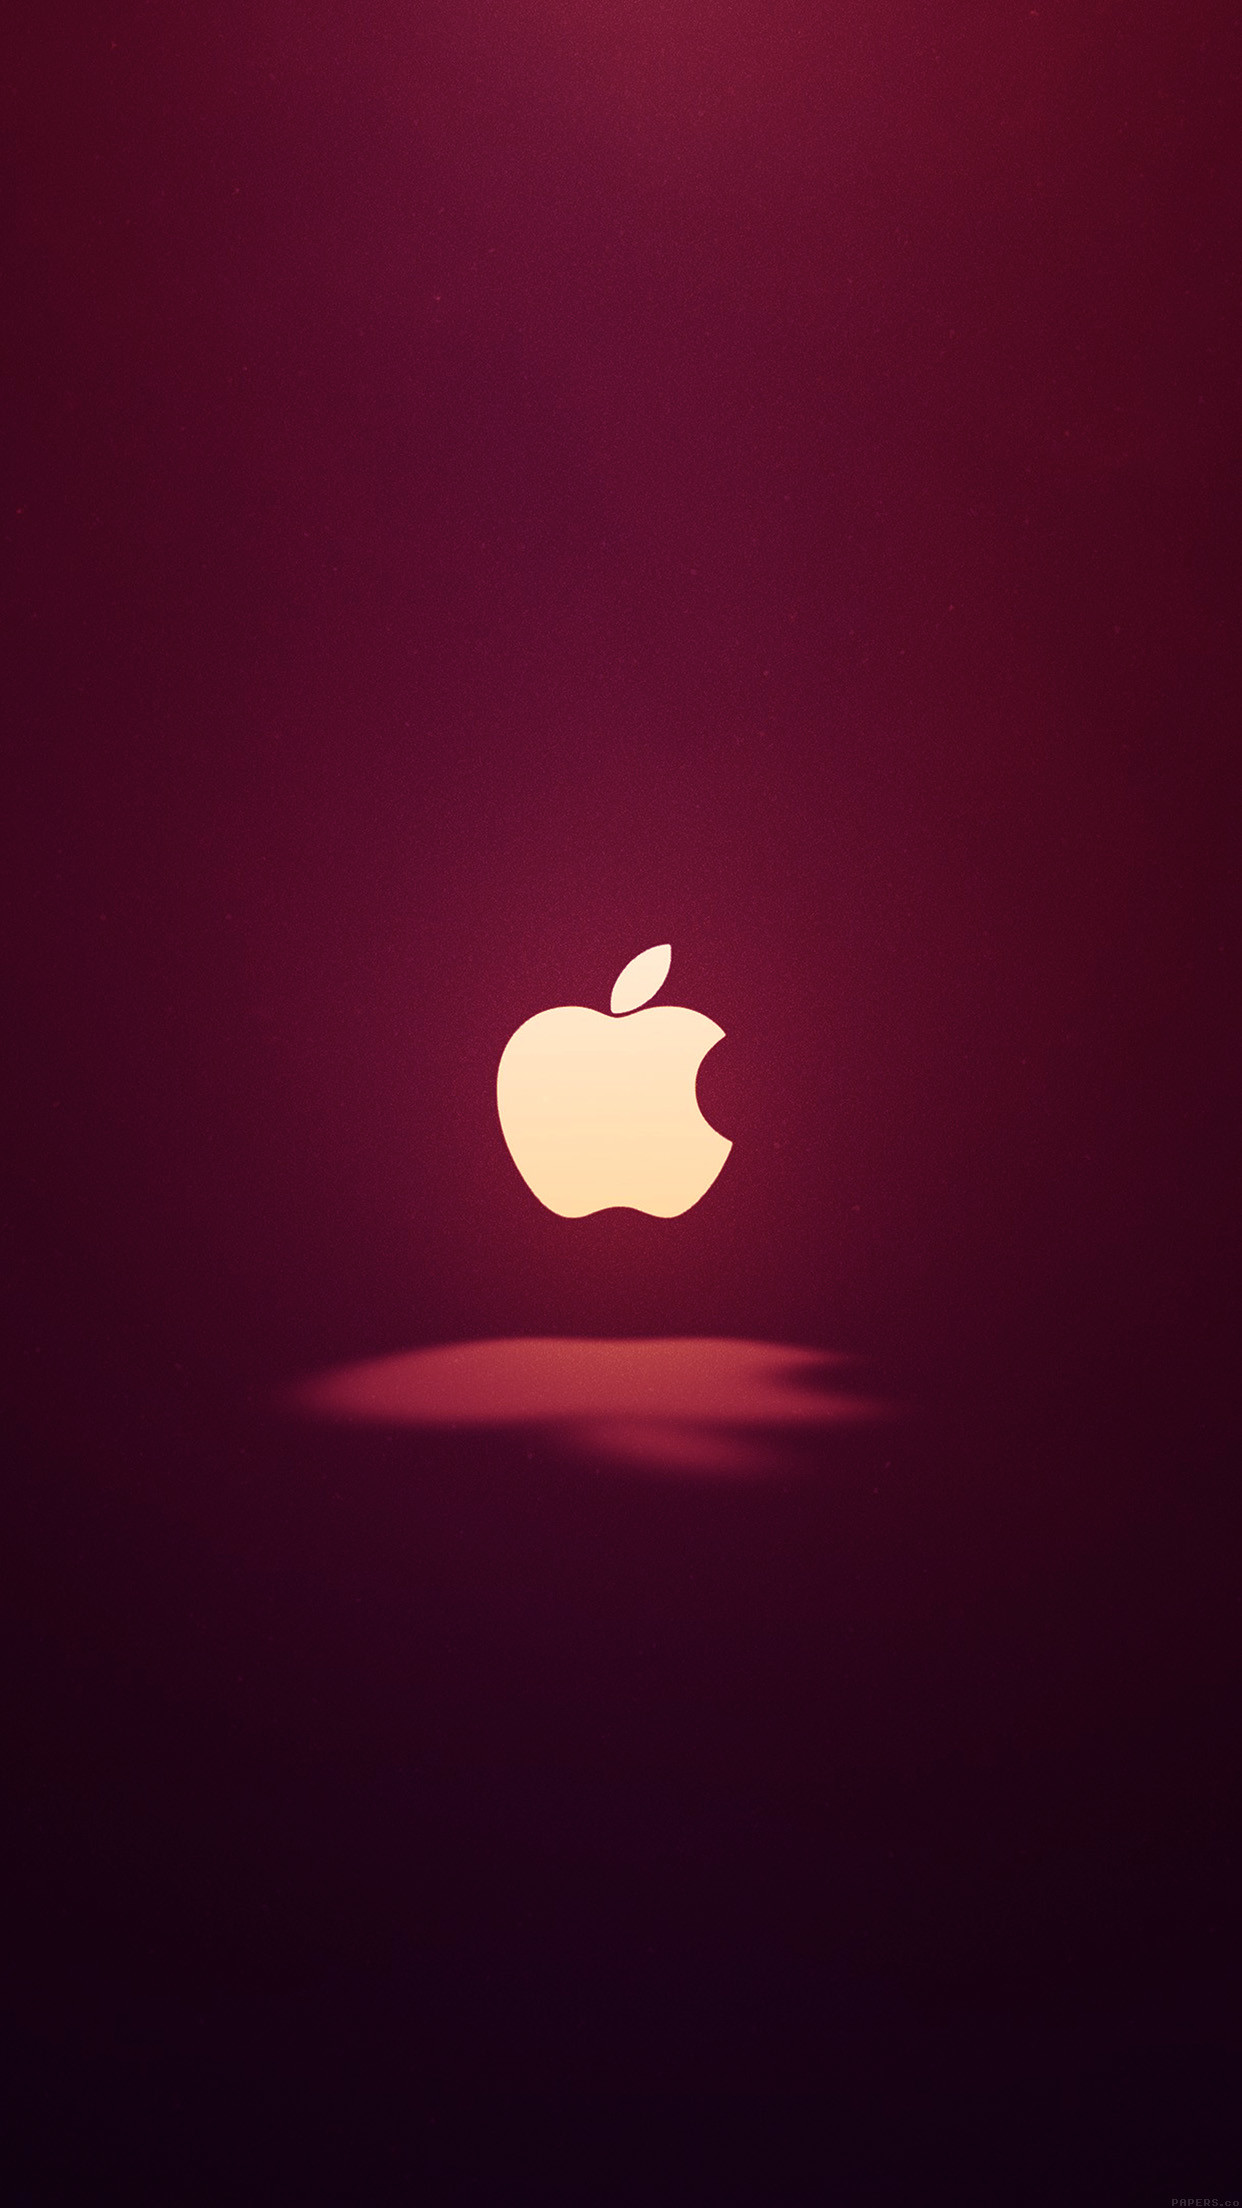 Res: 1242x2208, ai61-apple-logo-love-mania-wine-red